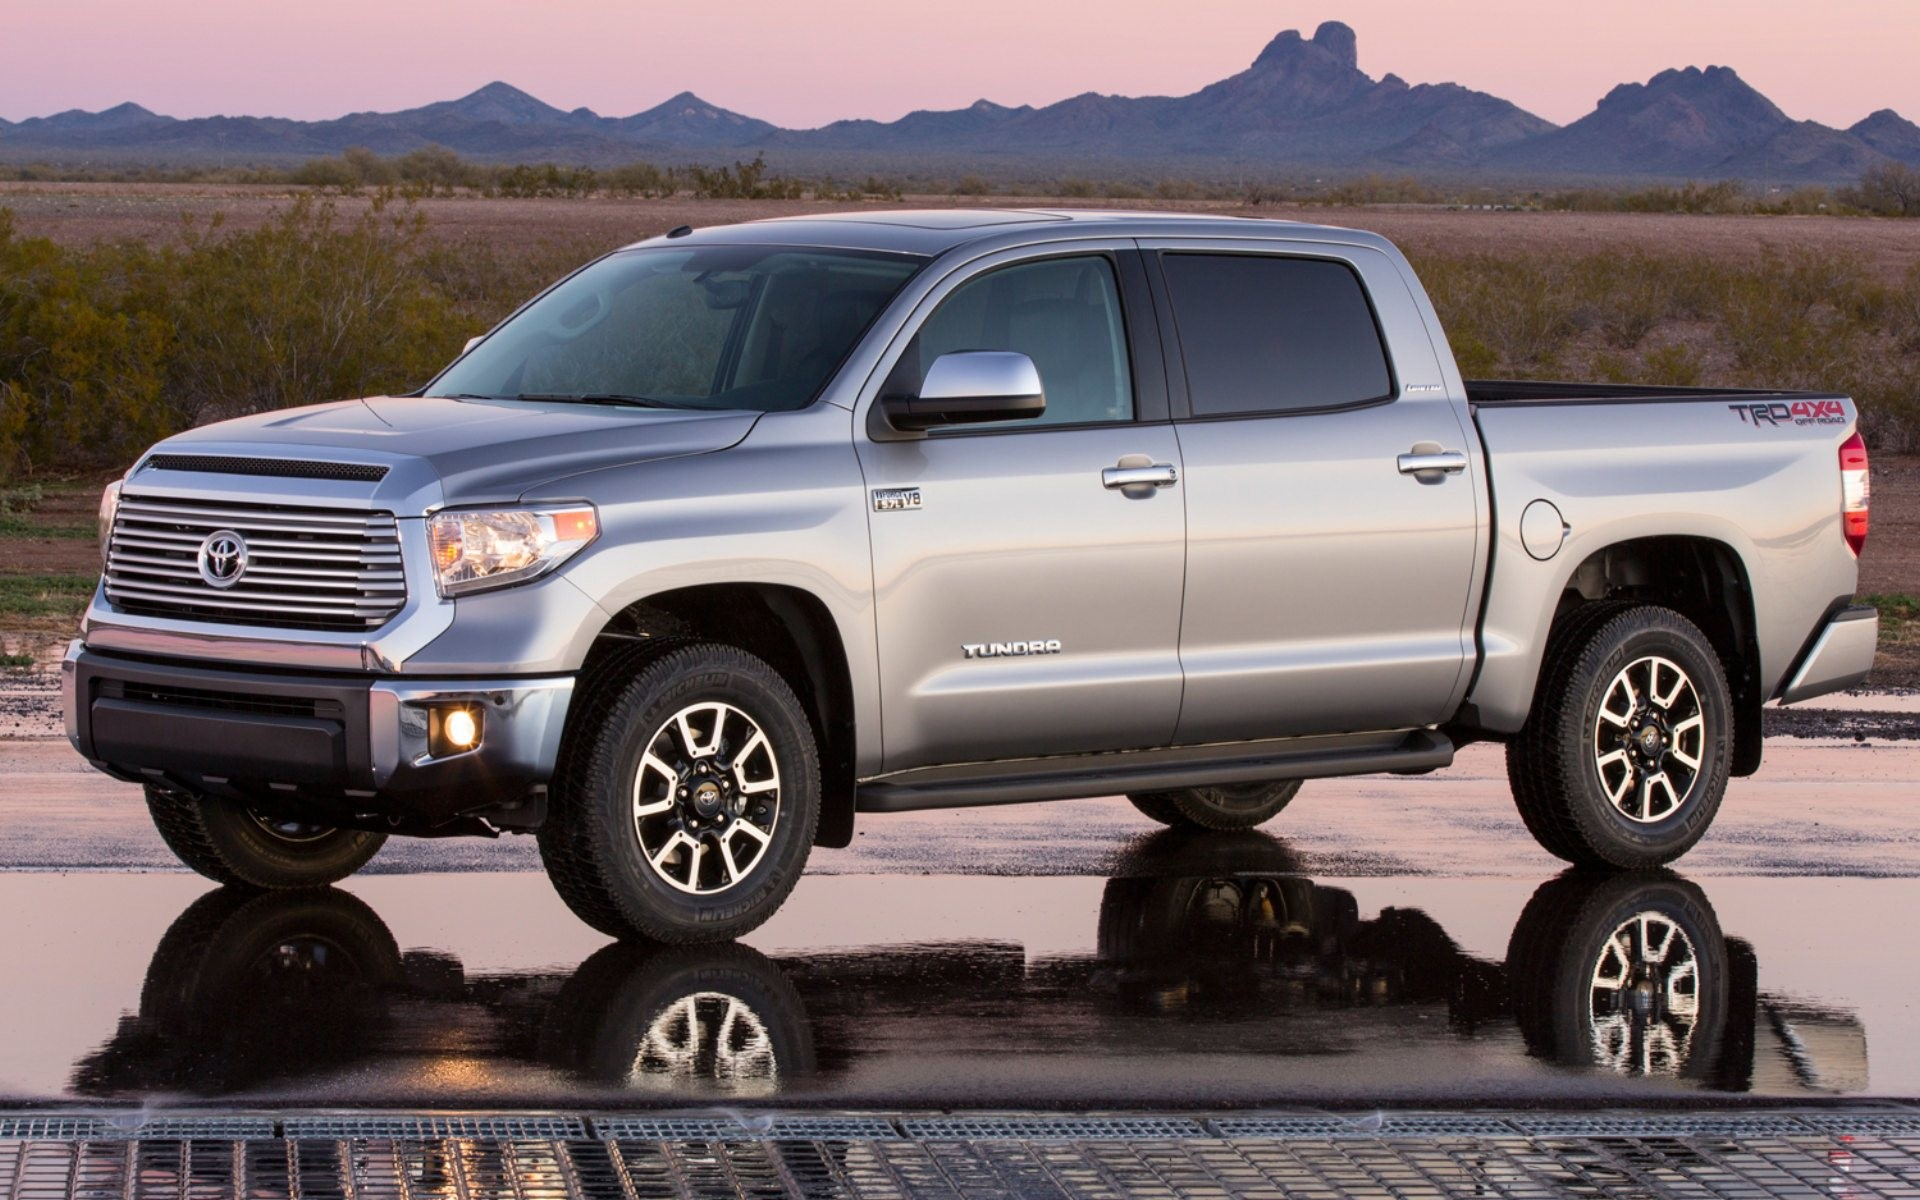 1920x1200 2014 Toyota Tundra Wallpapers | High Quality Wallpapers